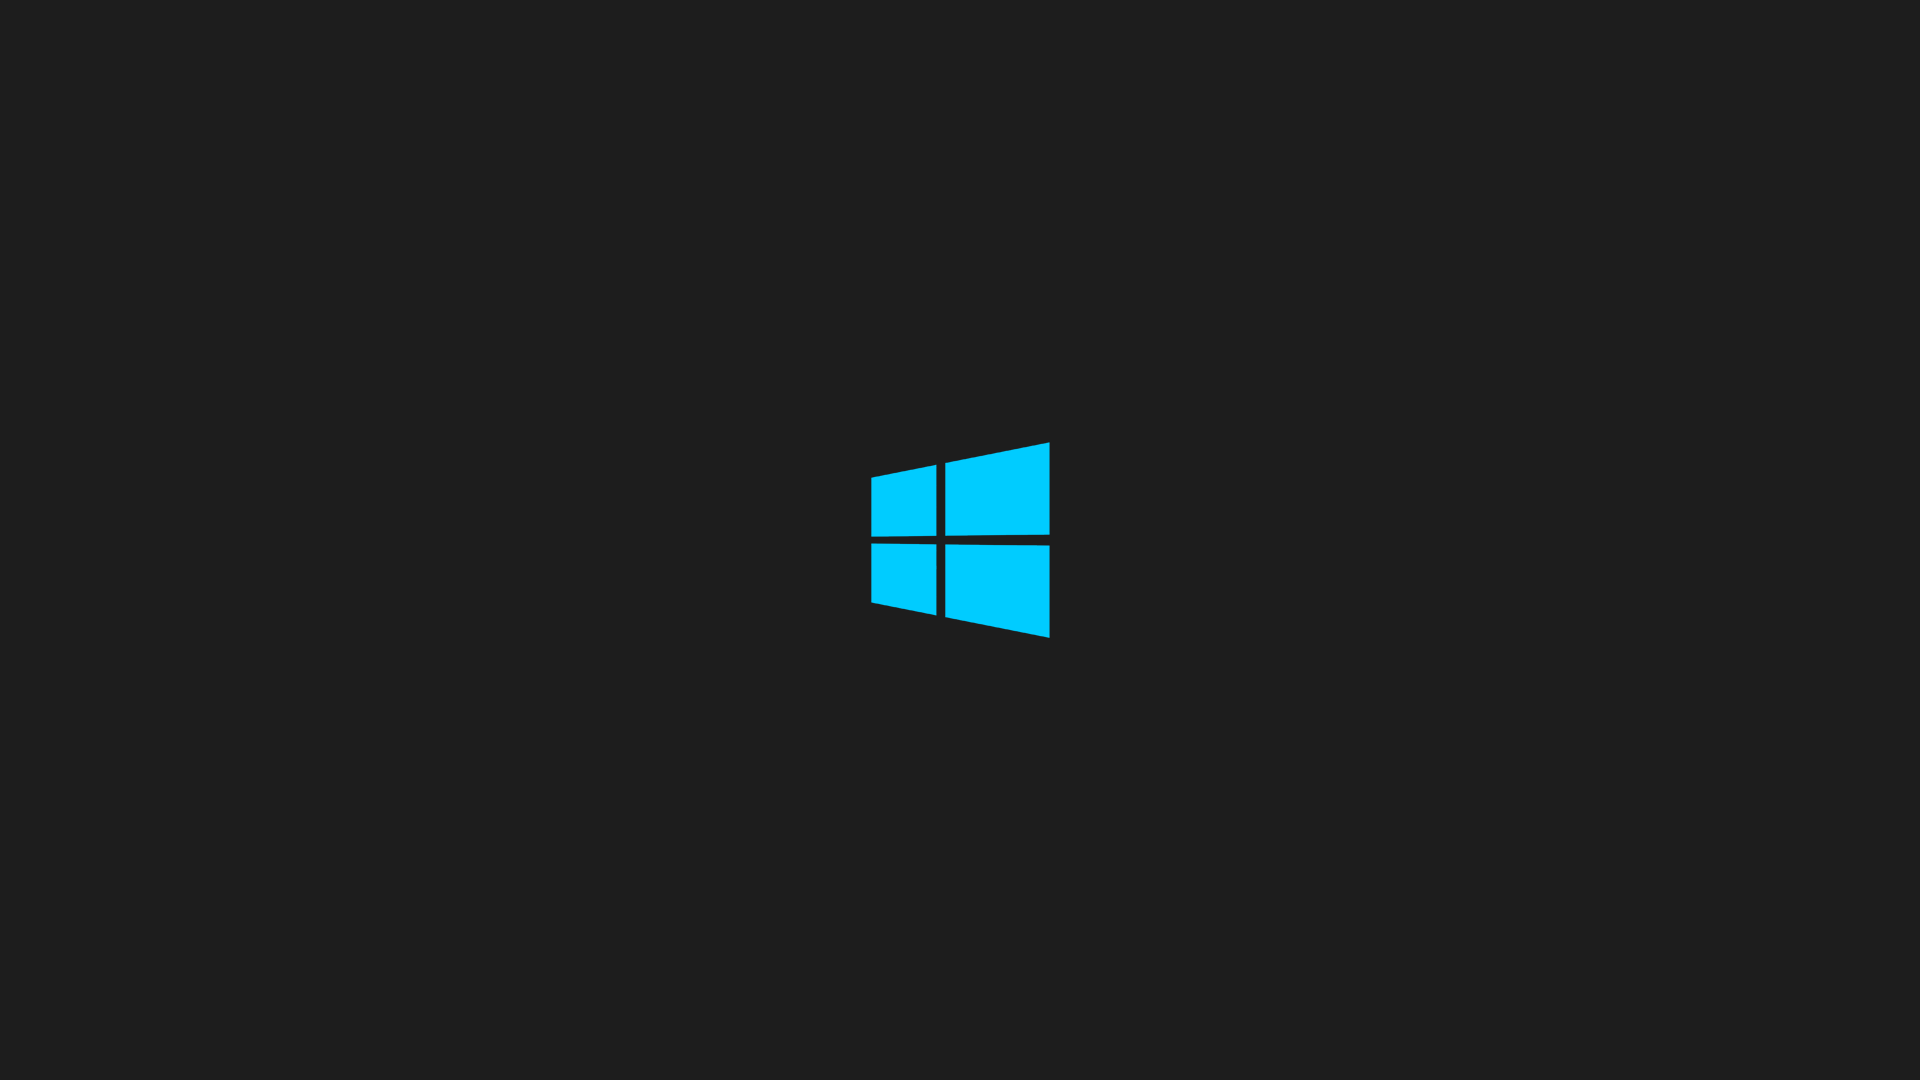 55 windows 8 wallpapers in hd for free download for Window 8 1 wallpaper